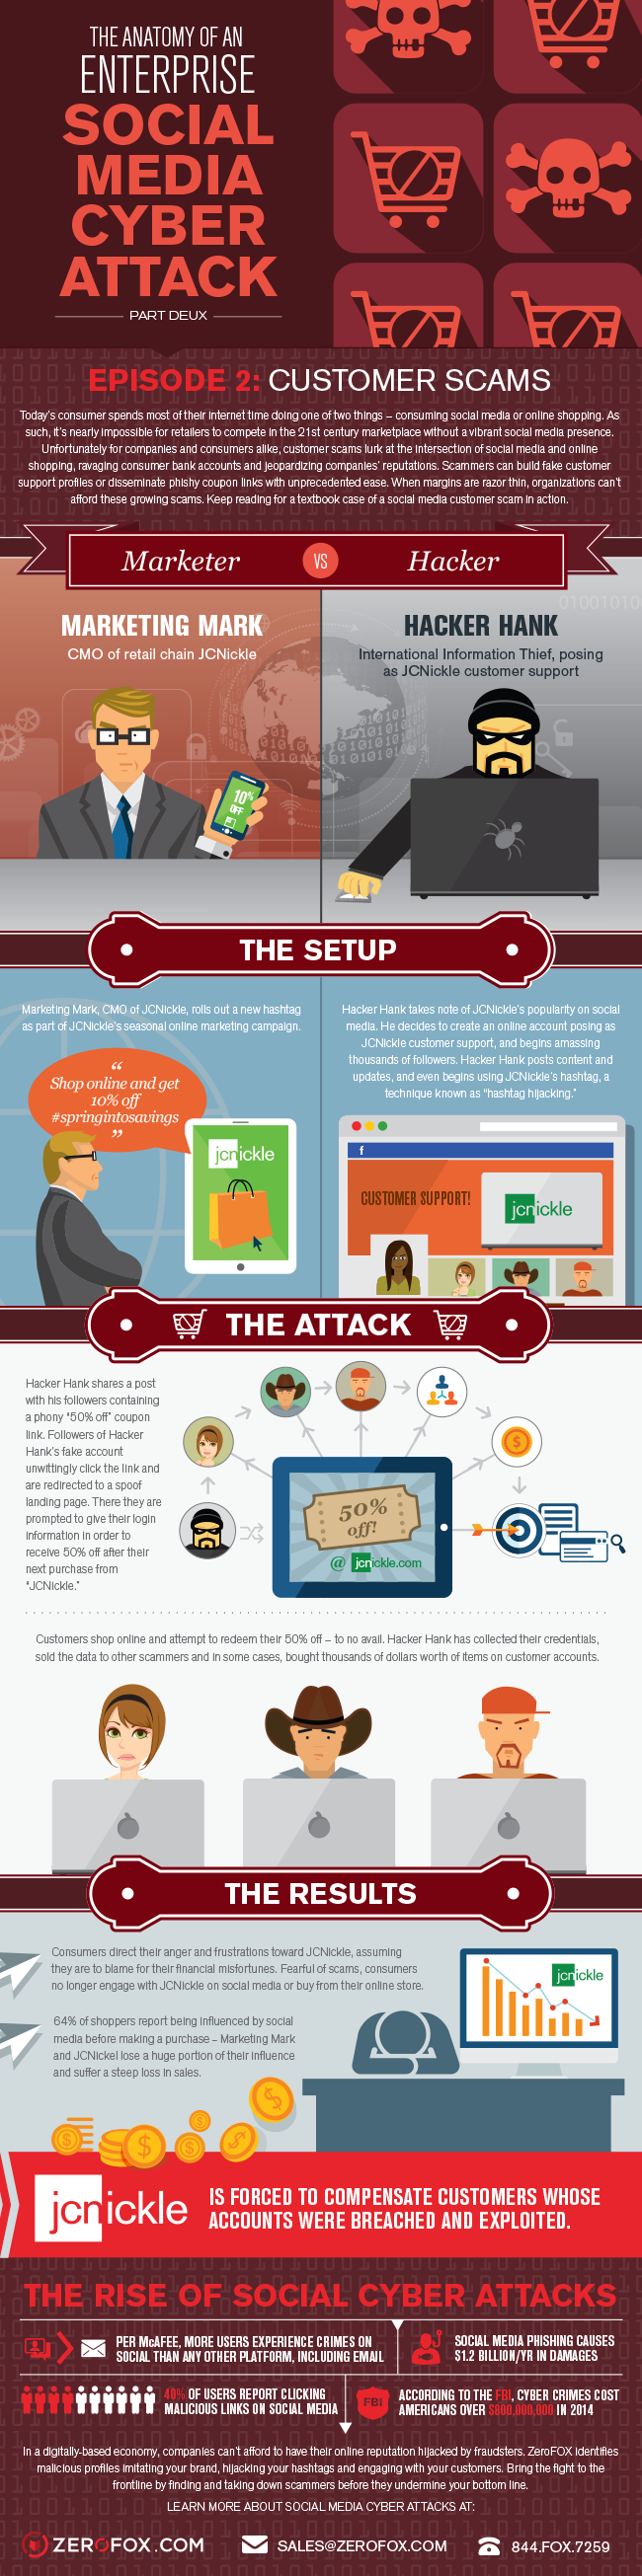 Anatomy of an Enterprise Social Cyber Attack: Customer Scams